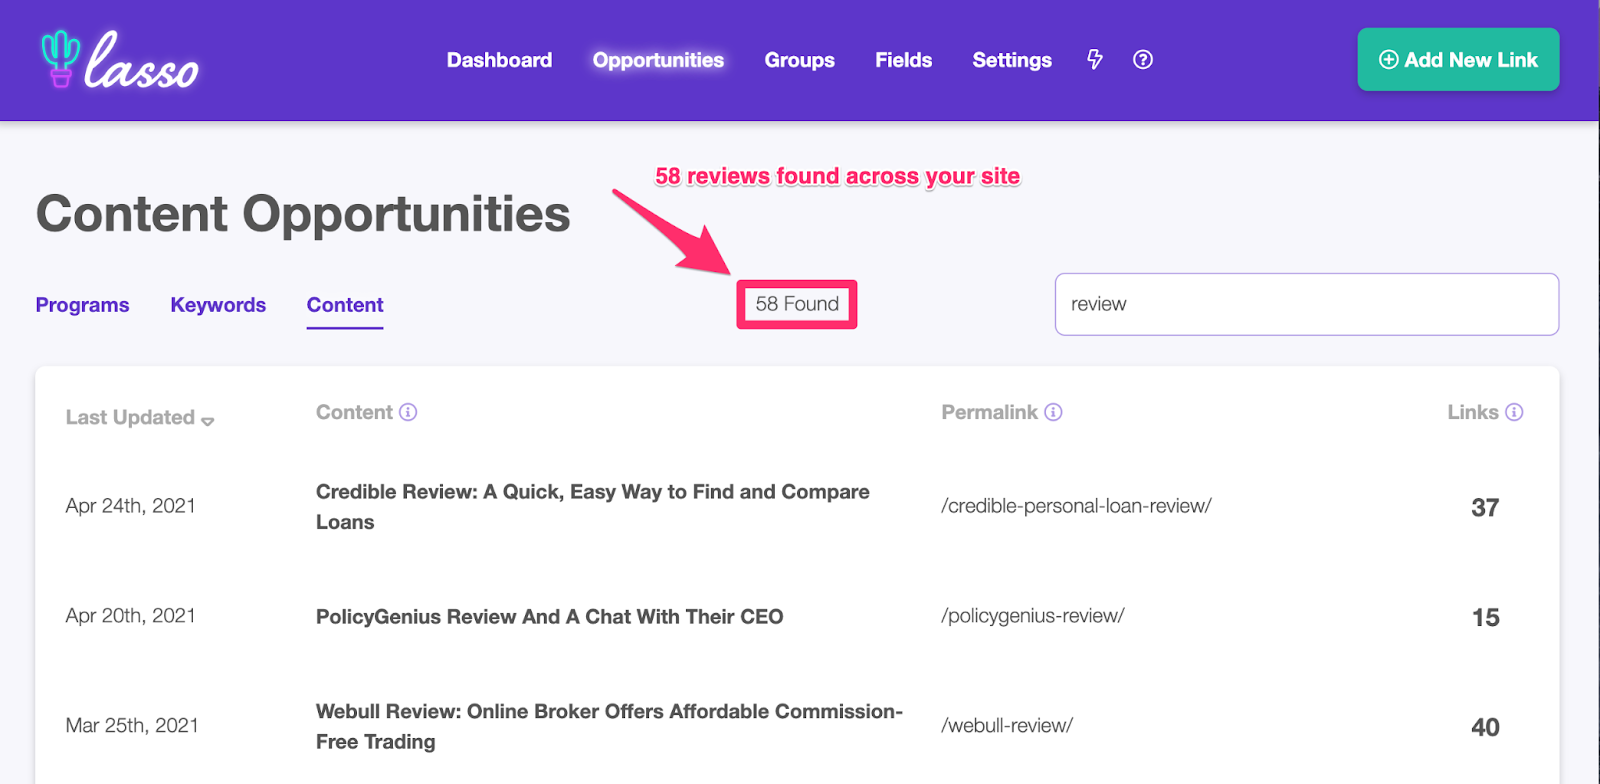 58 content opportunities found with the word review displayed in the title